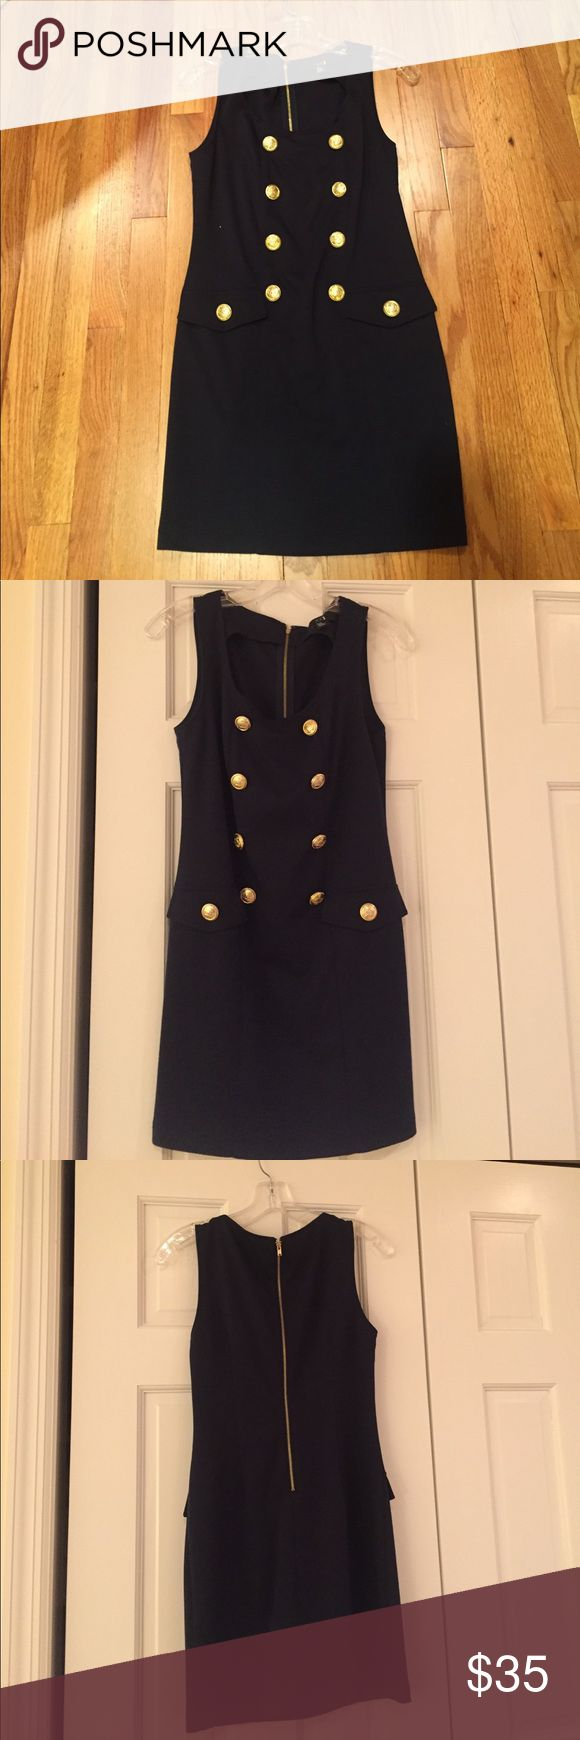 Forever 21 Navy Blue Dress - Size M Item Description: Comfy and chic dress! Worn several times but in great condition! Navy dress with gold nautical themed buttons. Women's M from Forever 21  Shop Details: Smoke free and pet free household. Willing to accept your best offer! Please comment if you have any questions and I will get back to you within 24 hours. Forever 21 Dresses Midi